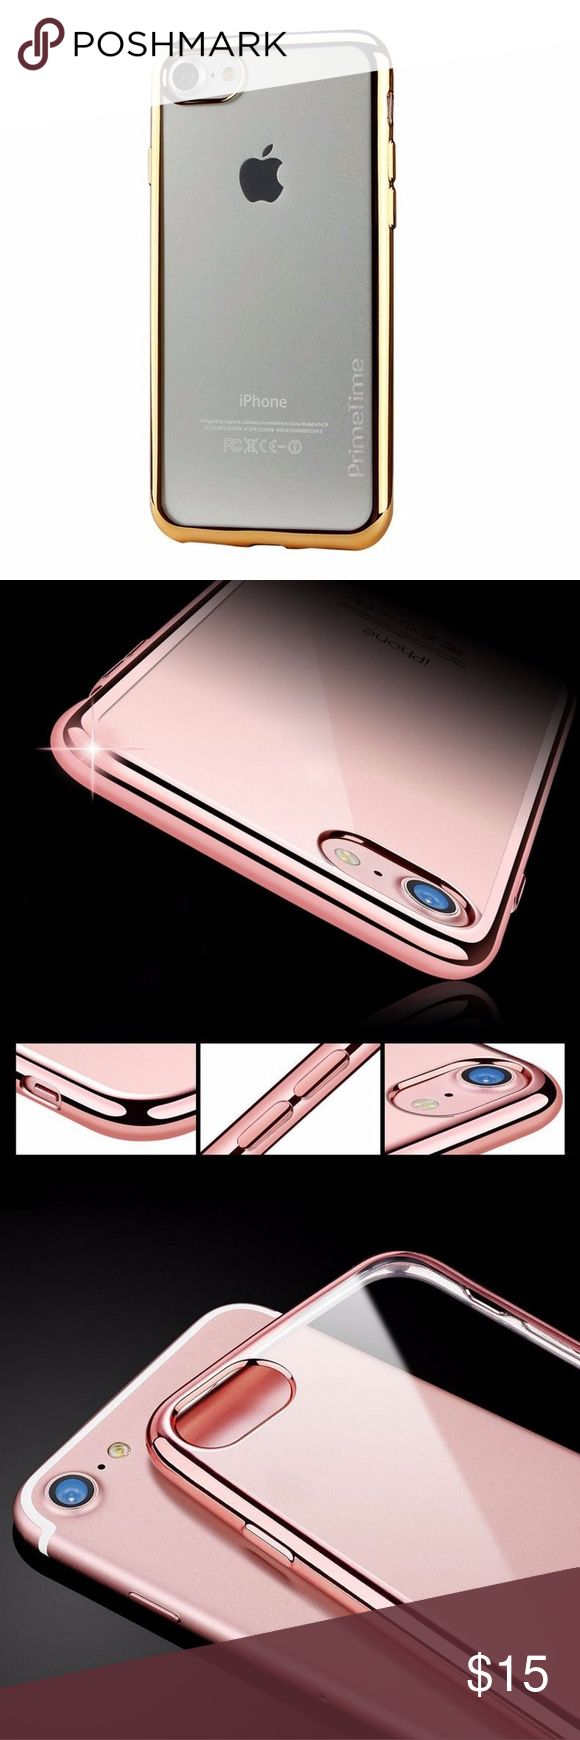 PrimeTime Luxury Elite Clear Case For iPhone 7 * Clear back with metallic gold bumper - also available with silver, blue or pink bumper  * Luxury Eletroplated Crystal Clear Soft TPU * Ultra Slim Profile * Soft to the touch * Drop Tested Shockproof * Superior Fit * PrimeTime Retail Packaging PrimeTime Accessories Phone Cases